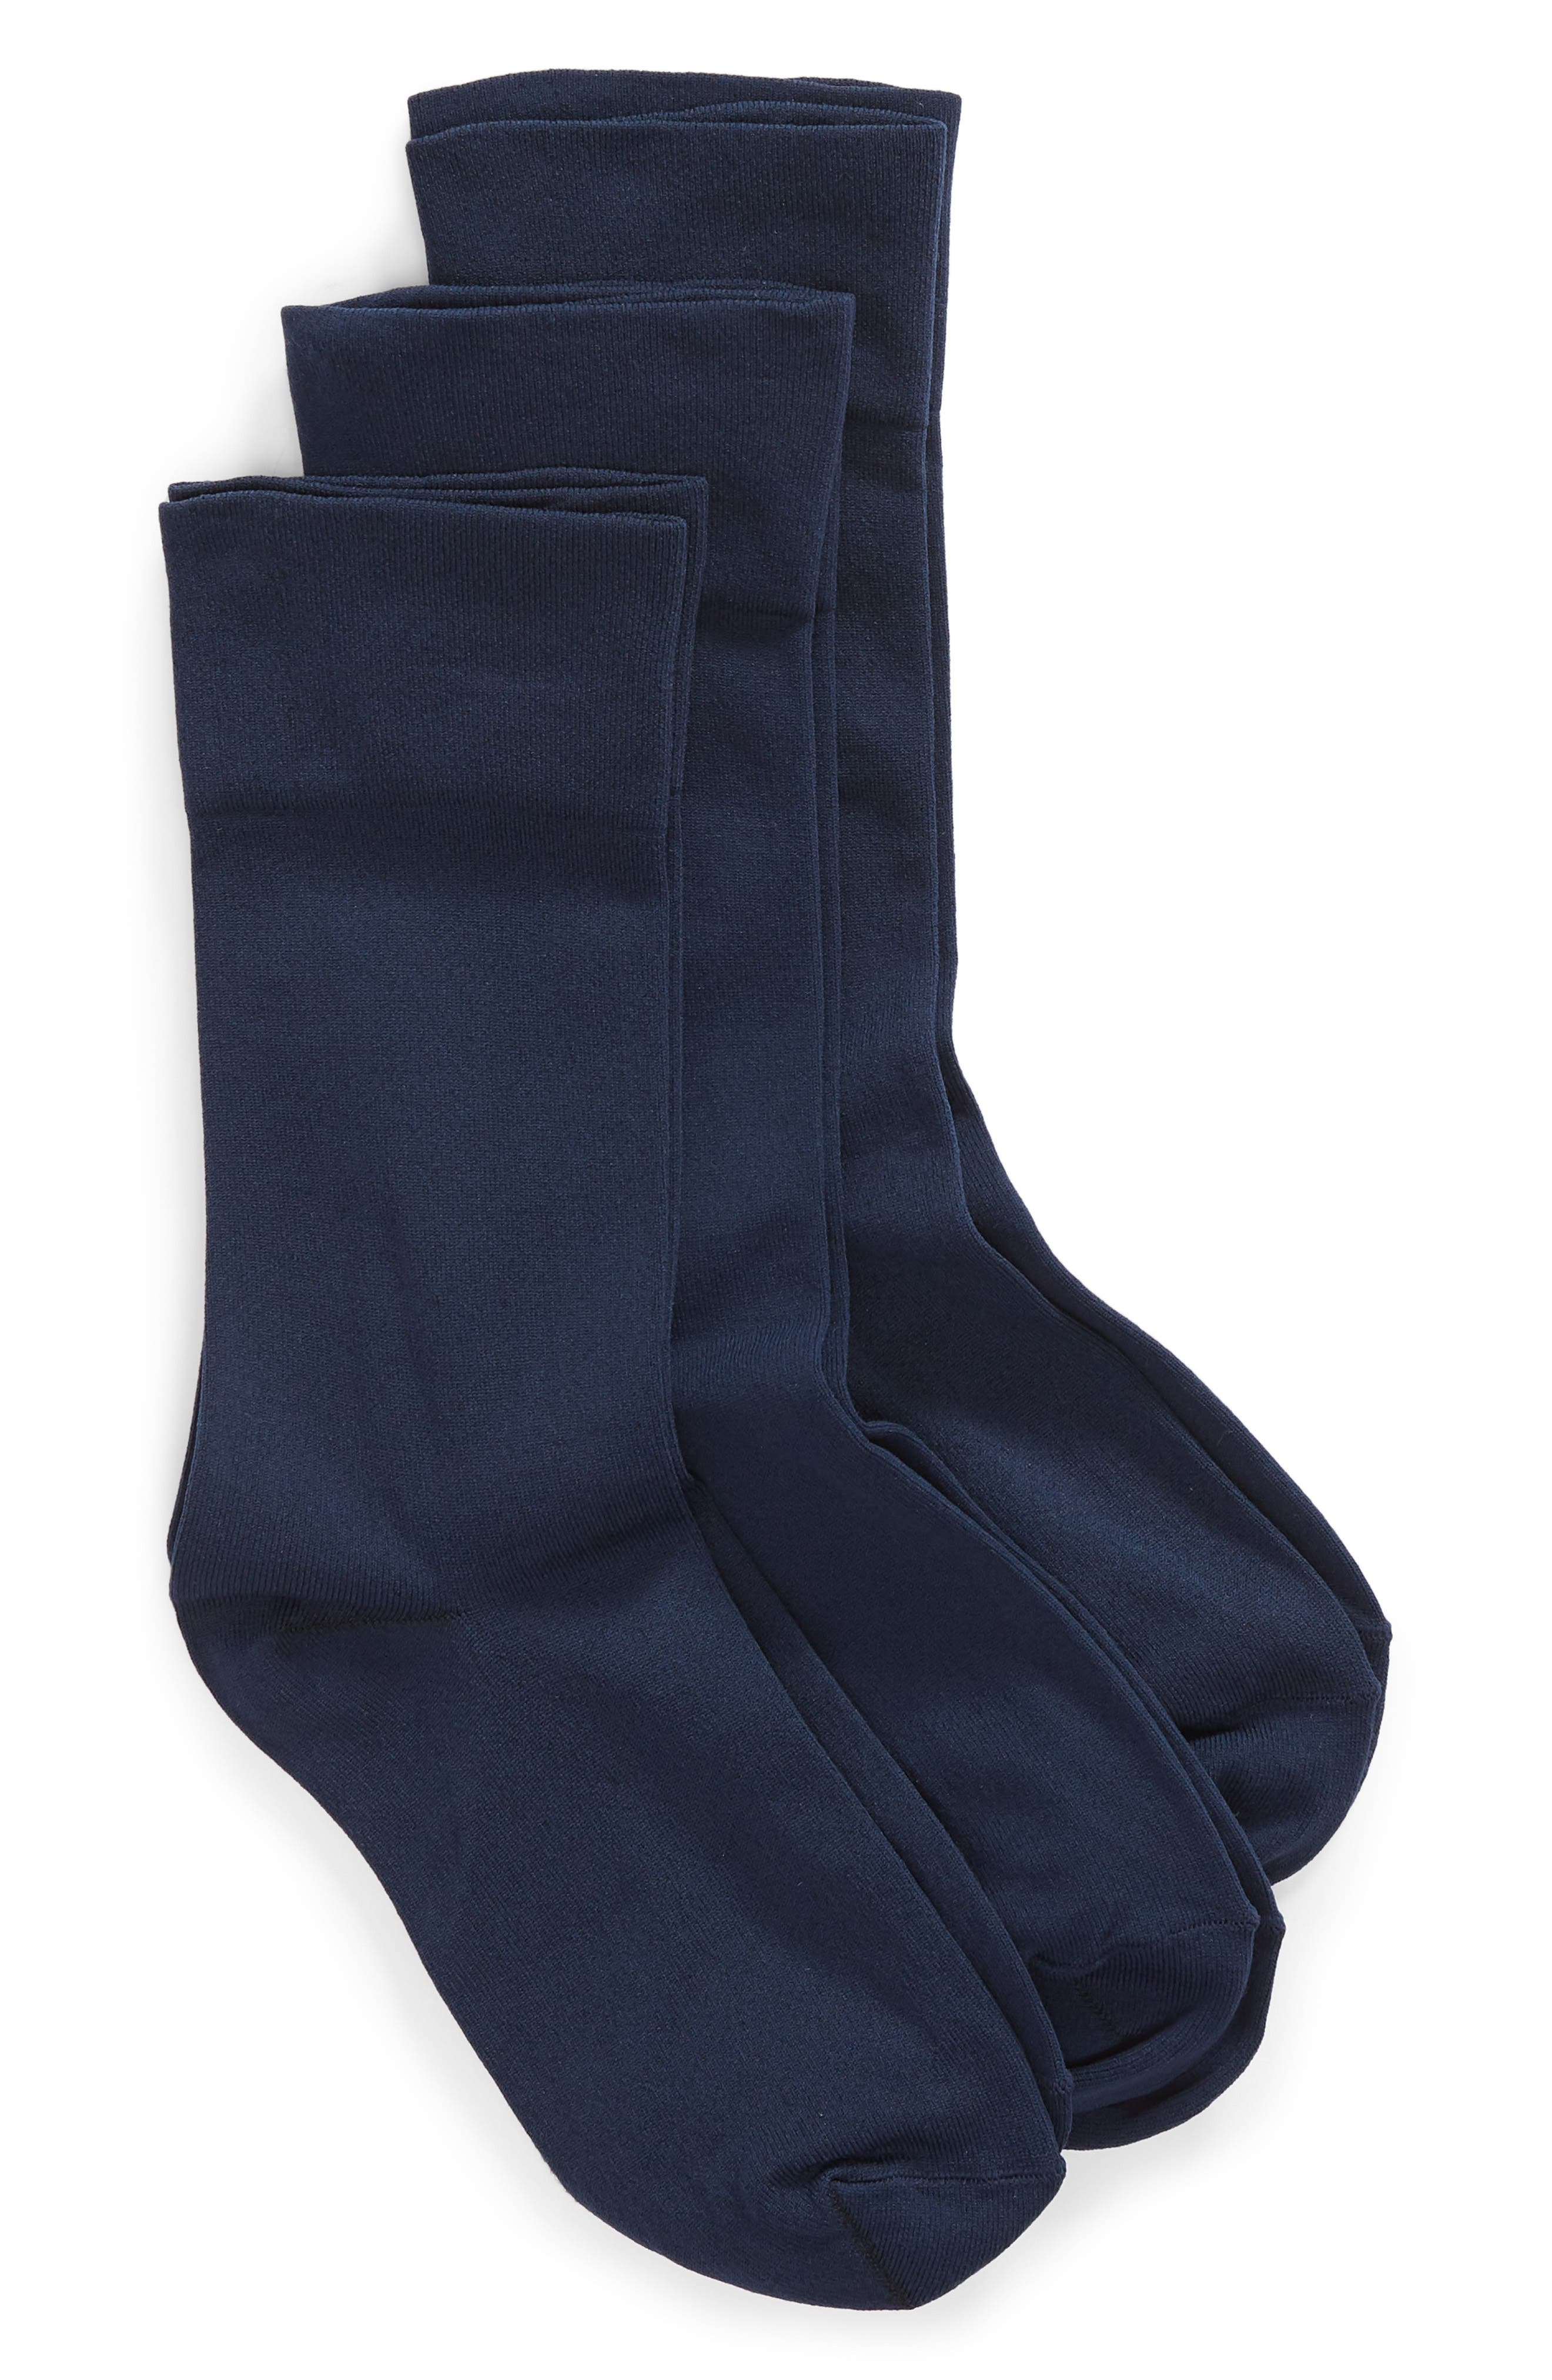 With their super-comfy fit and sleek look, you\\\'ll want to make sure you always have a pair and a spare-and another pair-of these stretchy crew socks at the ready. Style Name: Nordstrom Ultra Sleek 3-Pack Crew Socks. Style Number: 5608418 2. Available in stores.